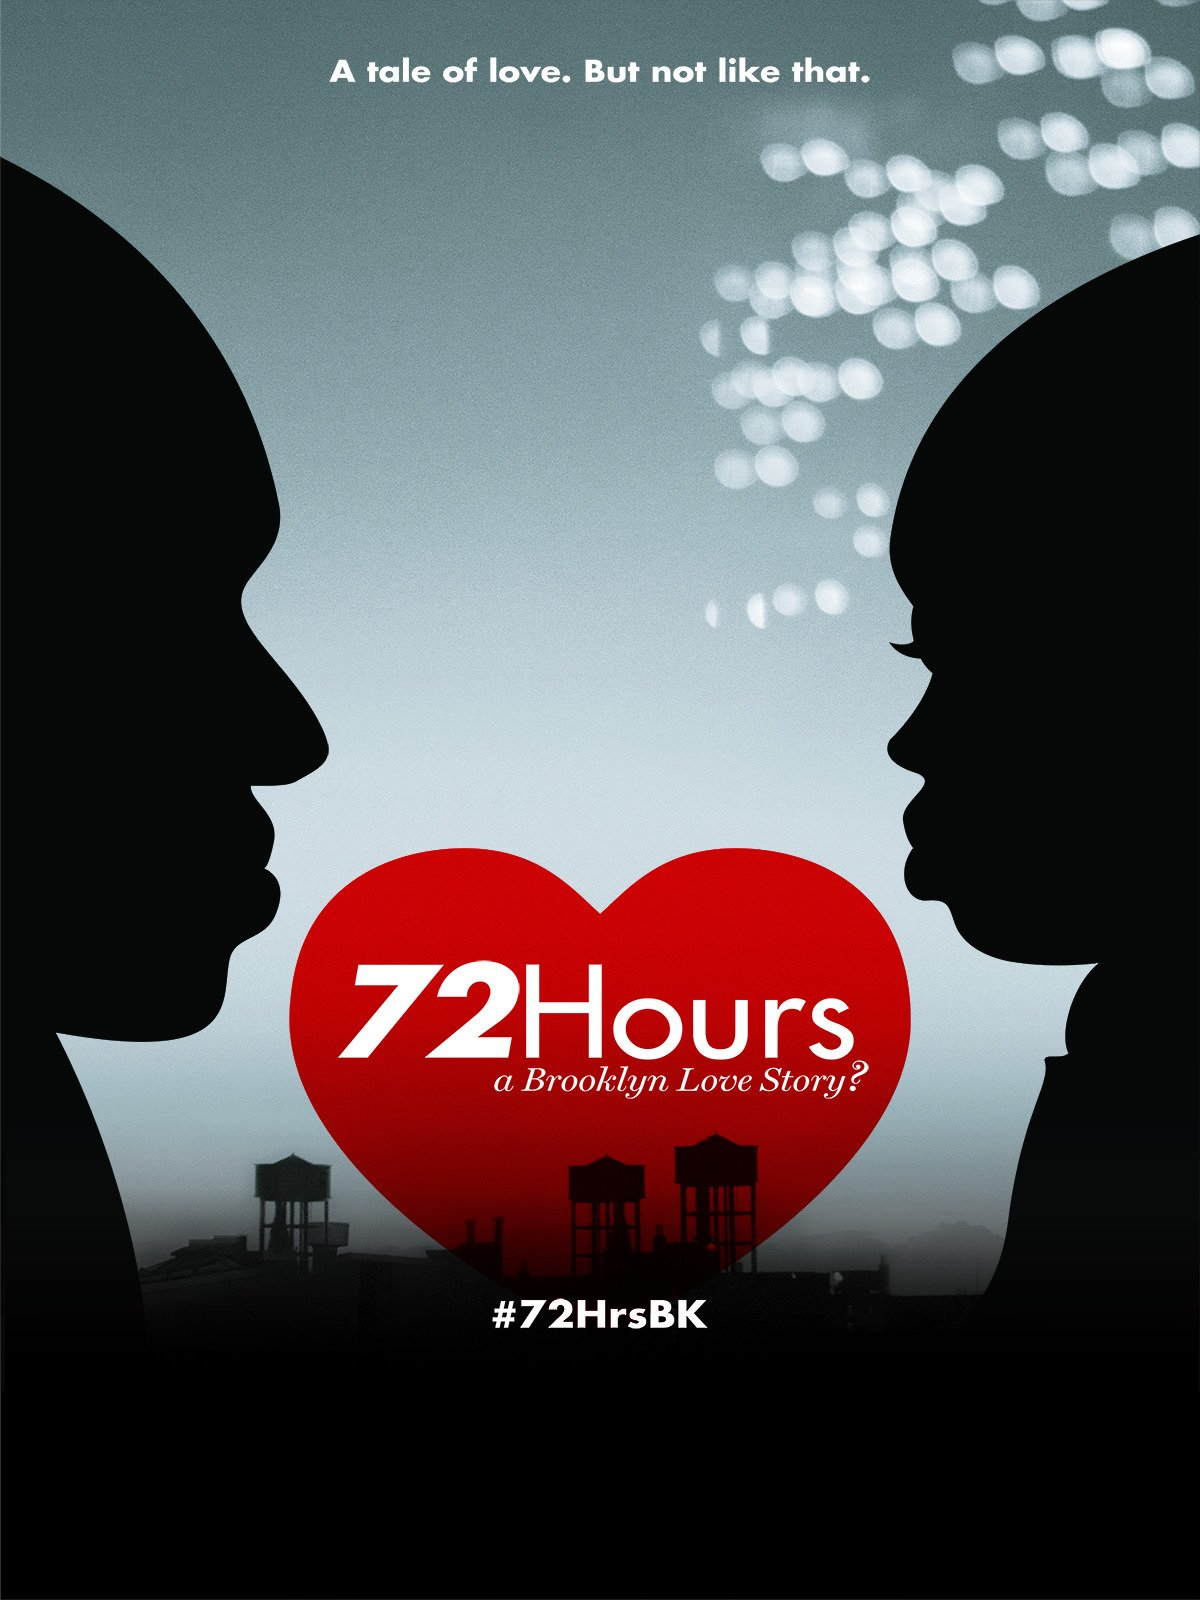 Amazon.com: 72 Hours: A Brooklyn Love Story?: Melvin Mogoli, Andrea ...